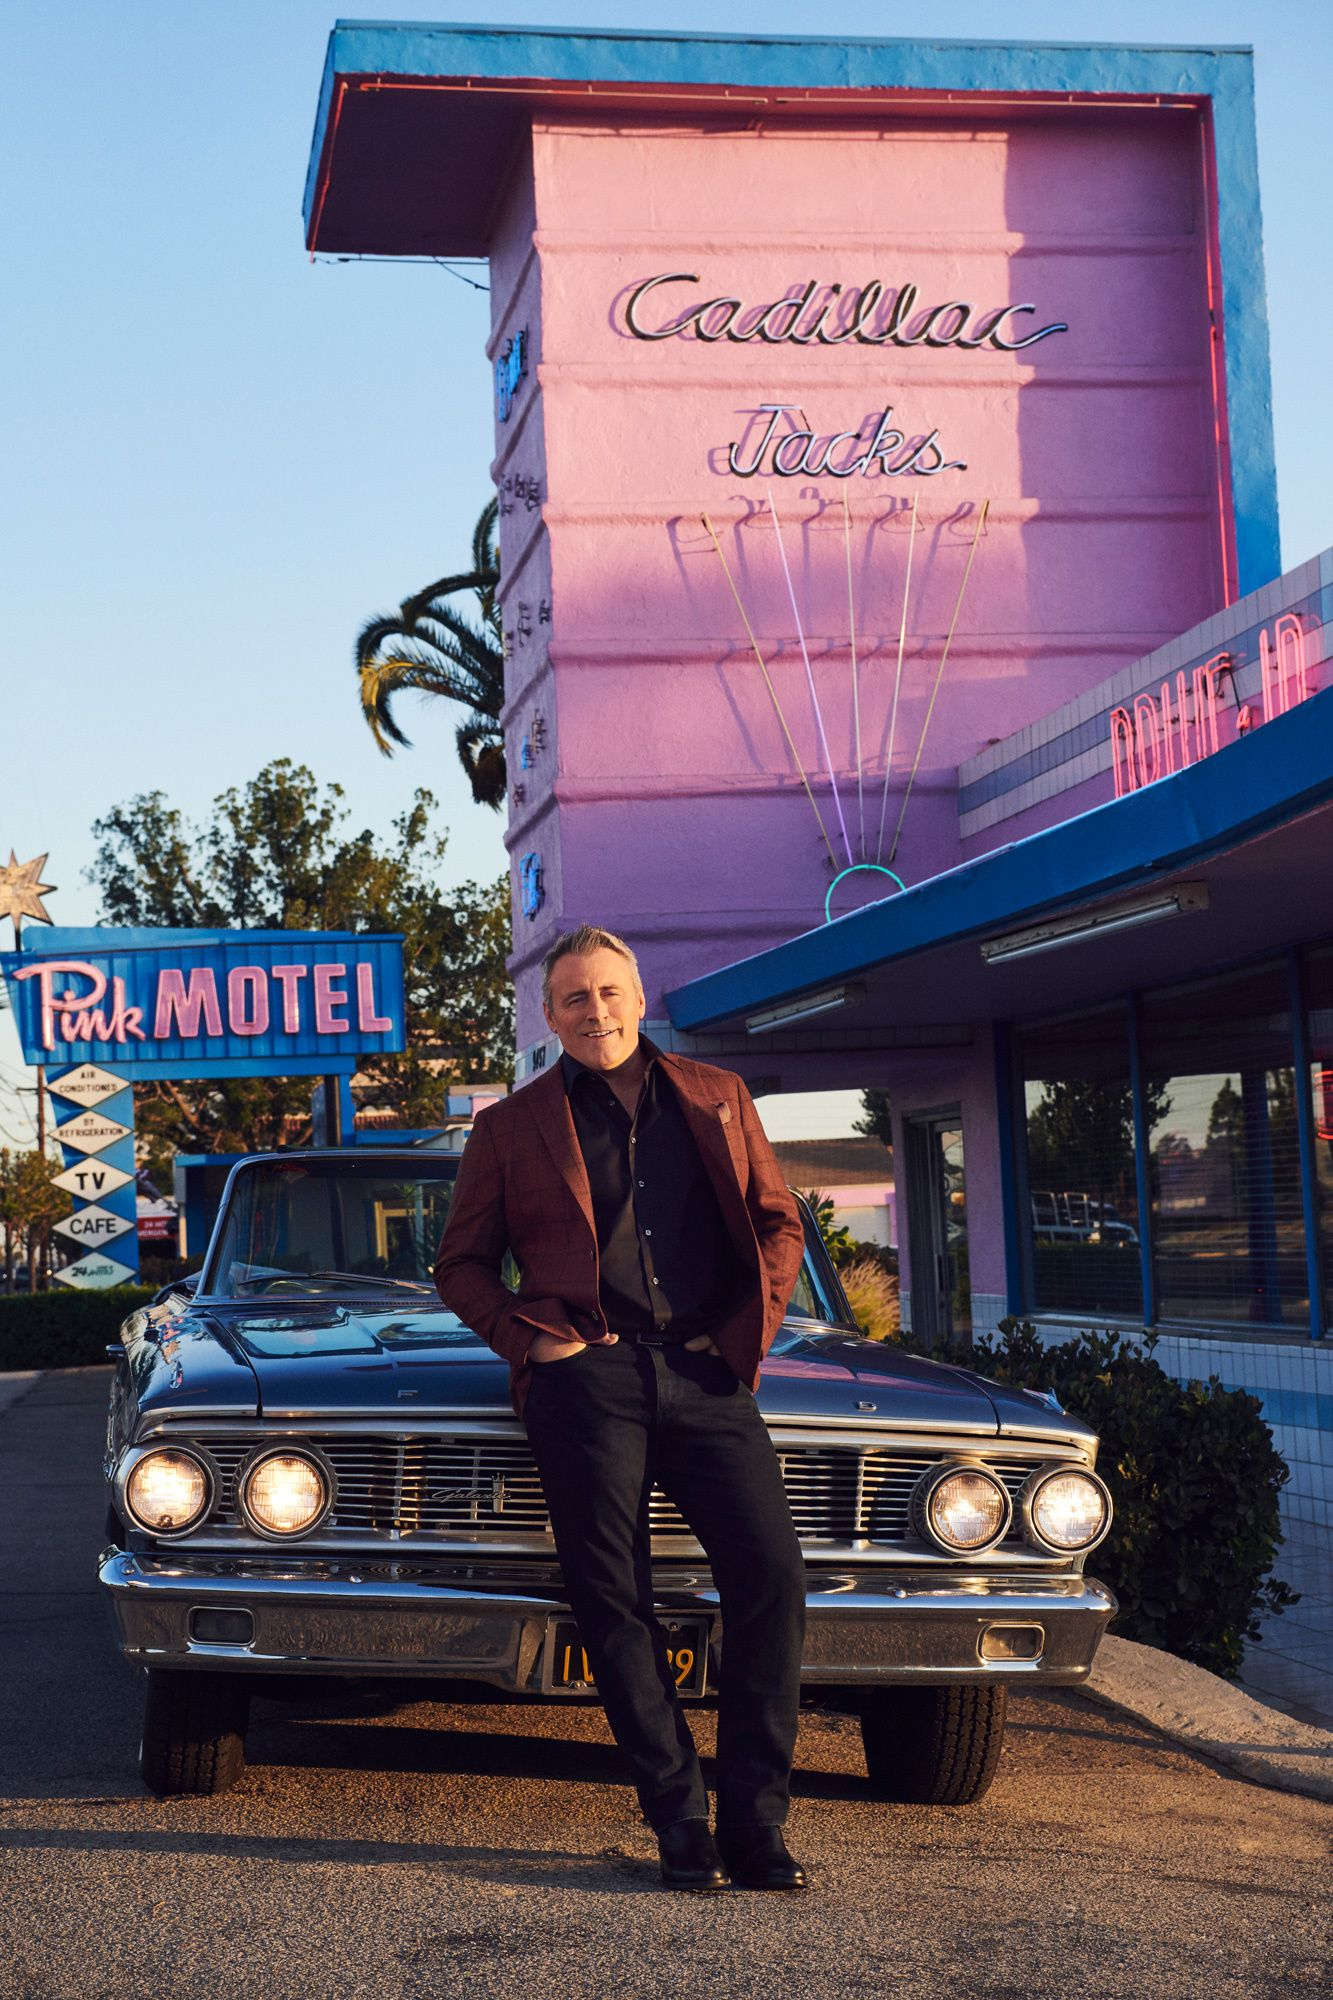 Matt LeBlanc at Pink Motel Cadillac Jacks in Los Angeles standing in front of a classic Ford convertible.